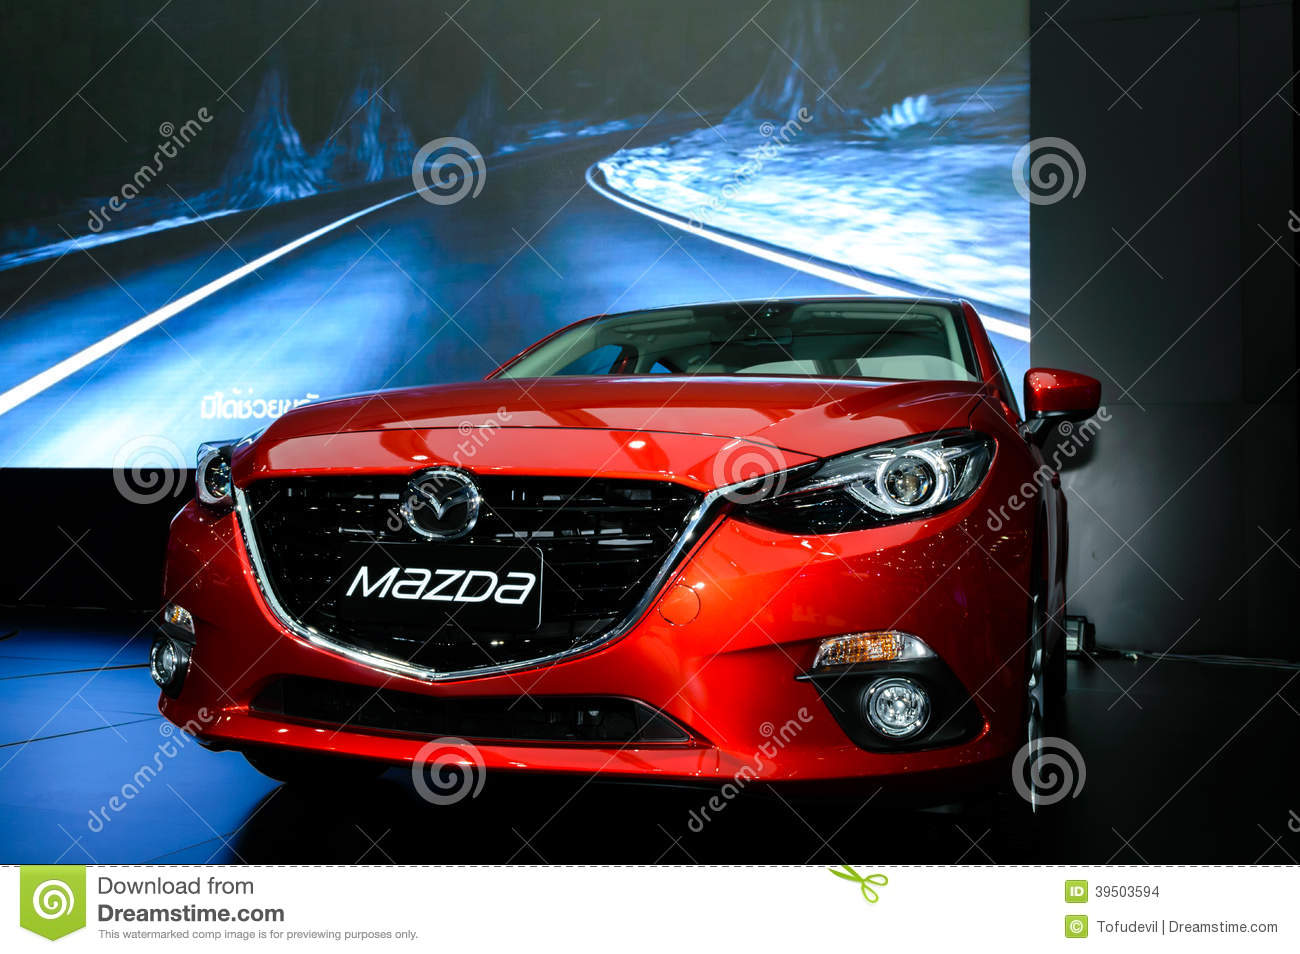 The All-New MAZDA 3 SKYACTIV Sports Compact.